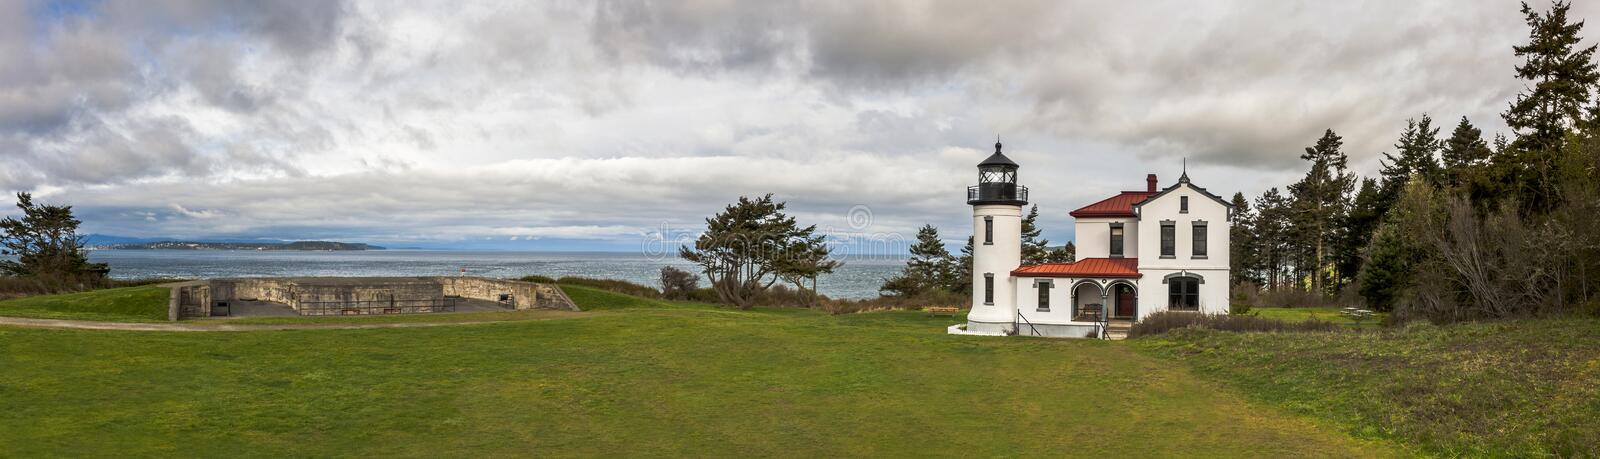 Amiralitetet huvudfyr, fort Casey, Washington royaltyfria bilder